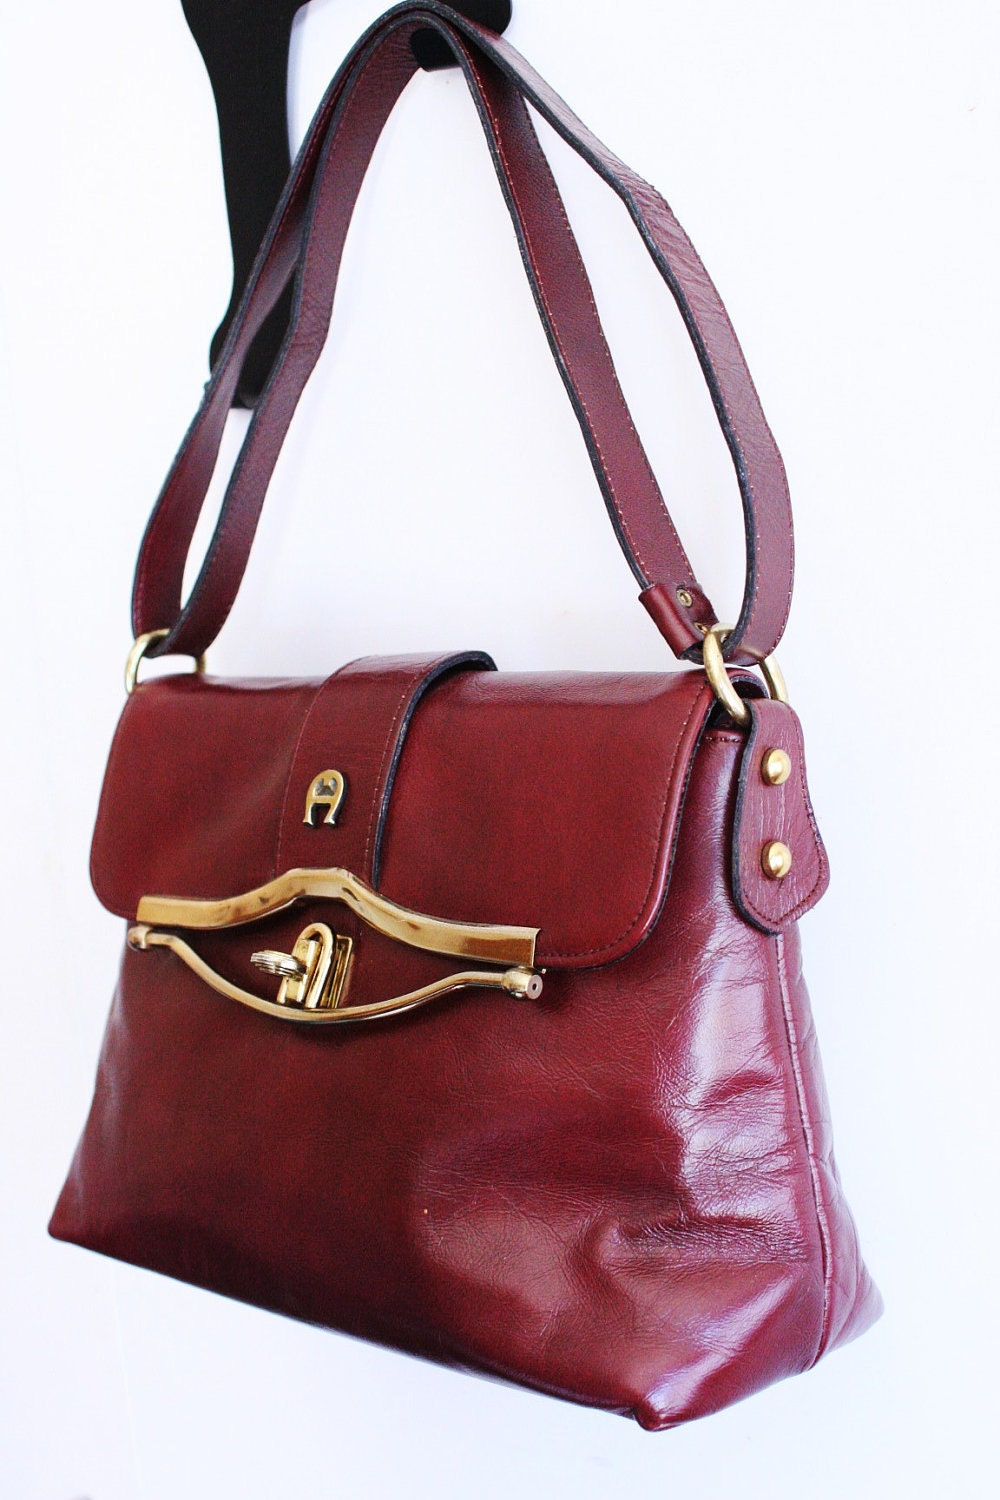 Etienne Aigner Vintage 1970 S Leather Purse Oxblood By